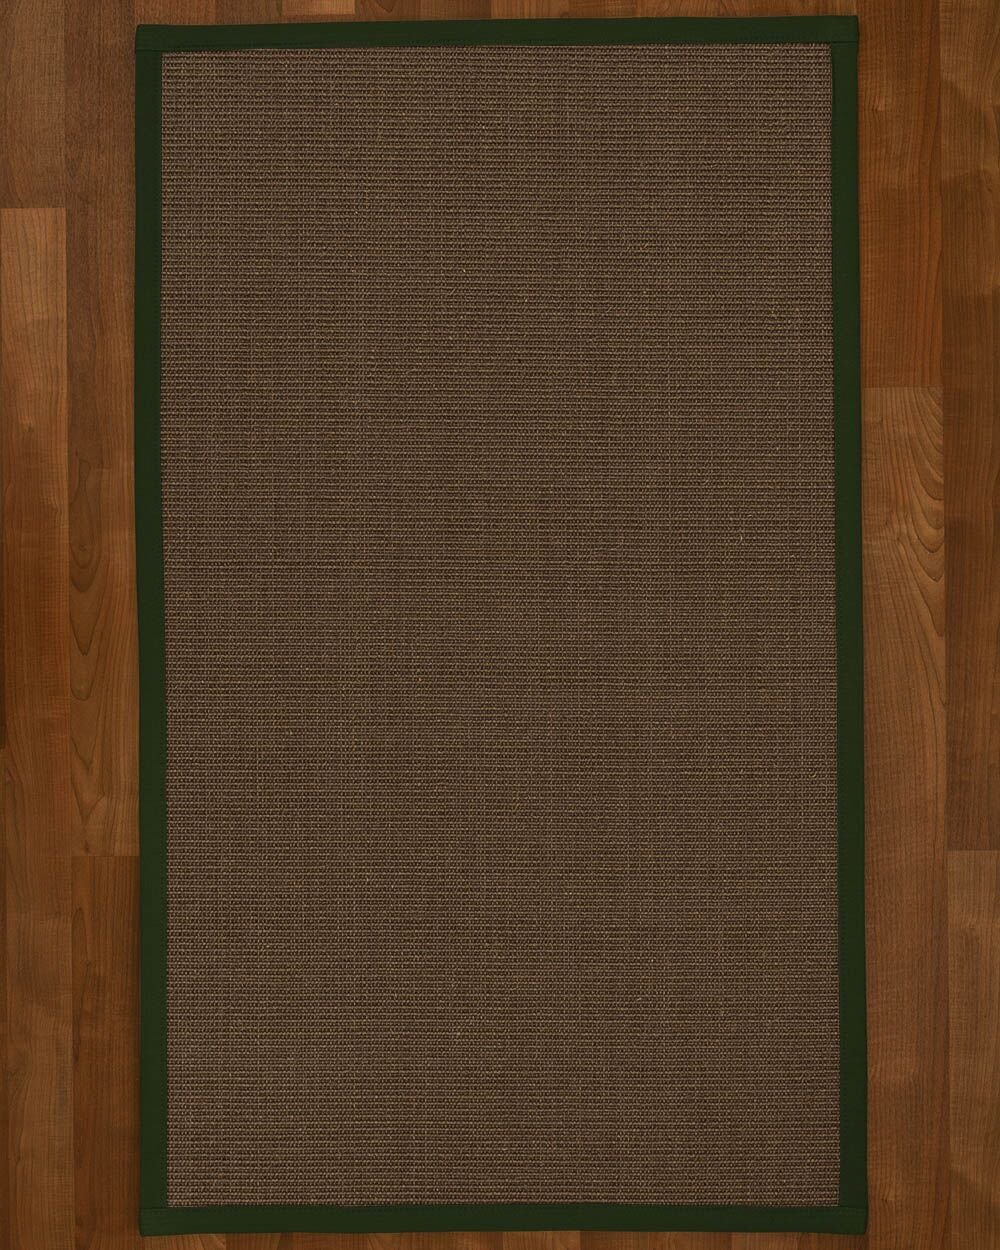 Brokaw Contemporary Hand Woven Brown Area Rug Rug Size: Rectangle 3' X 5'